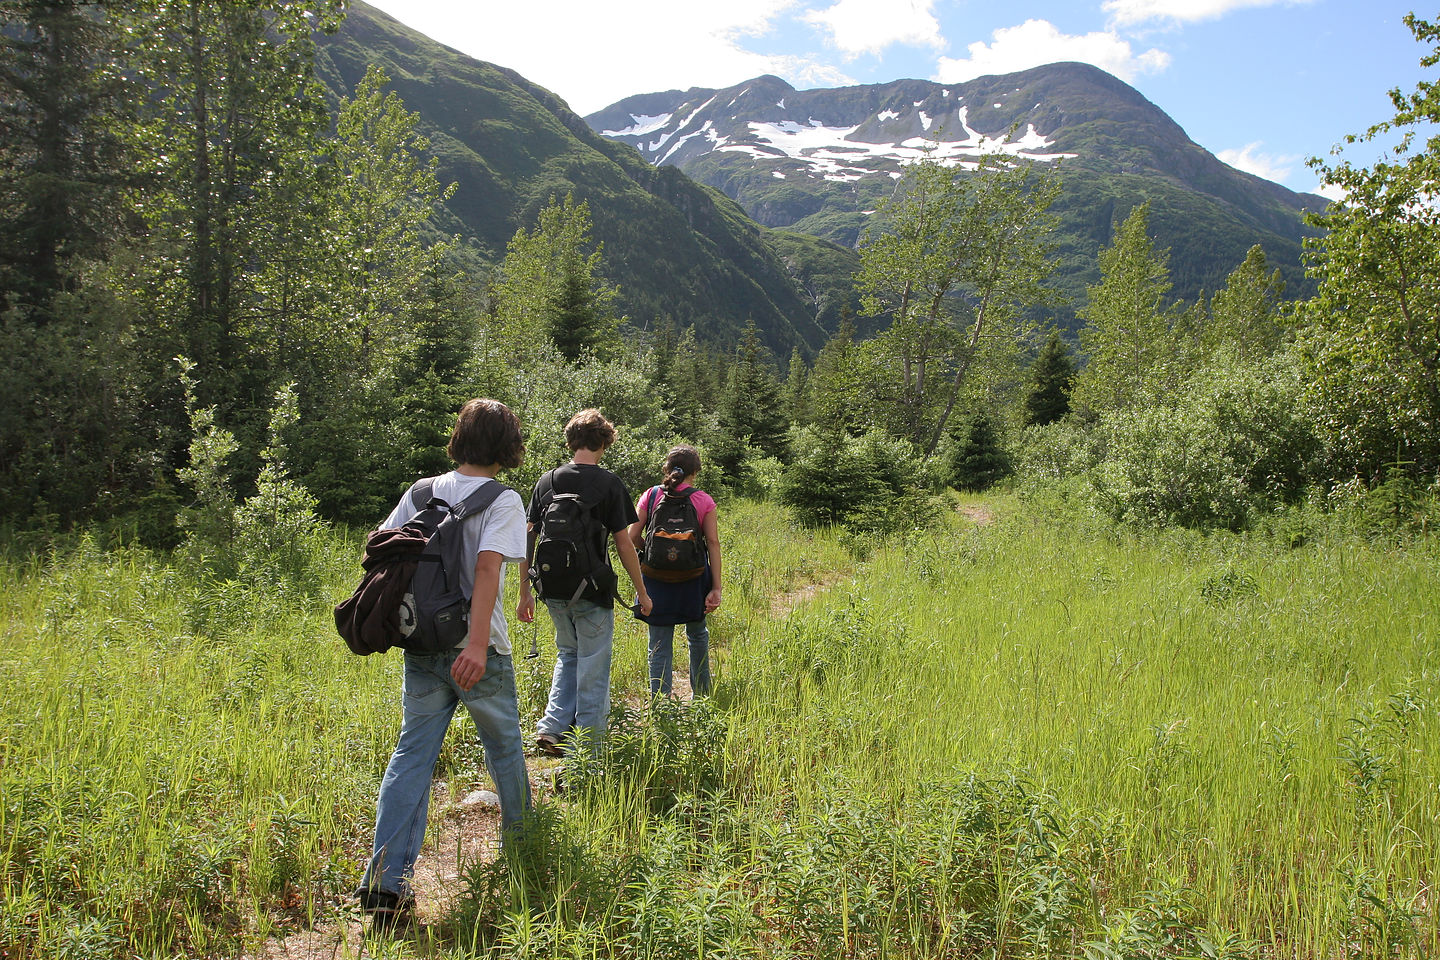 Lolo and boys hiking back to campsite